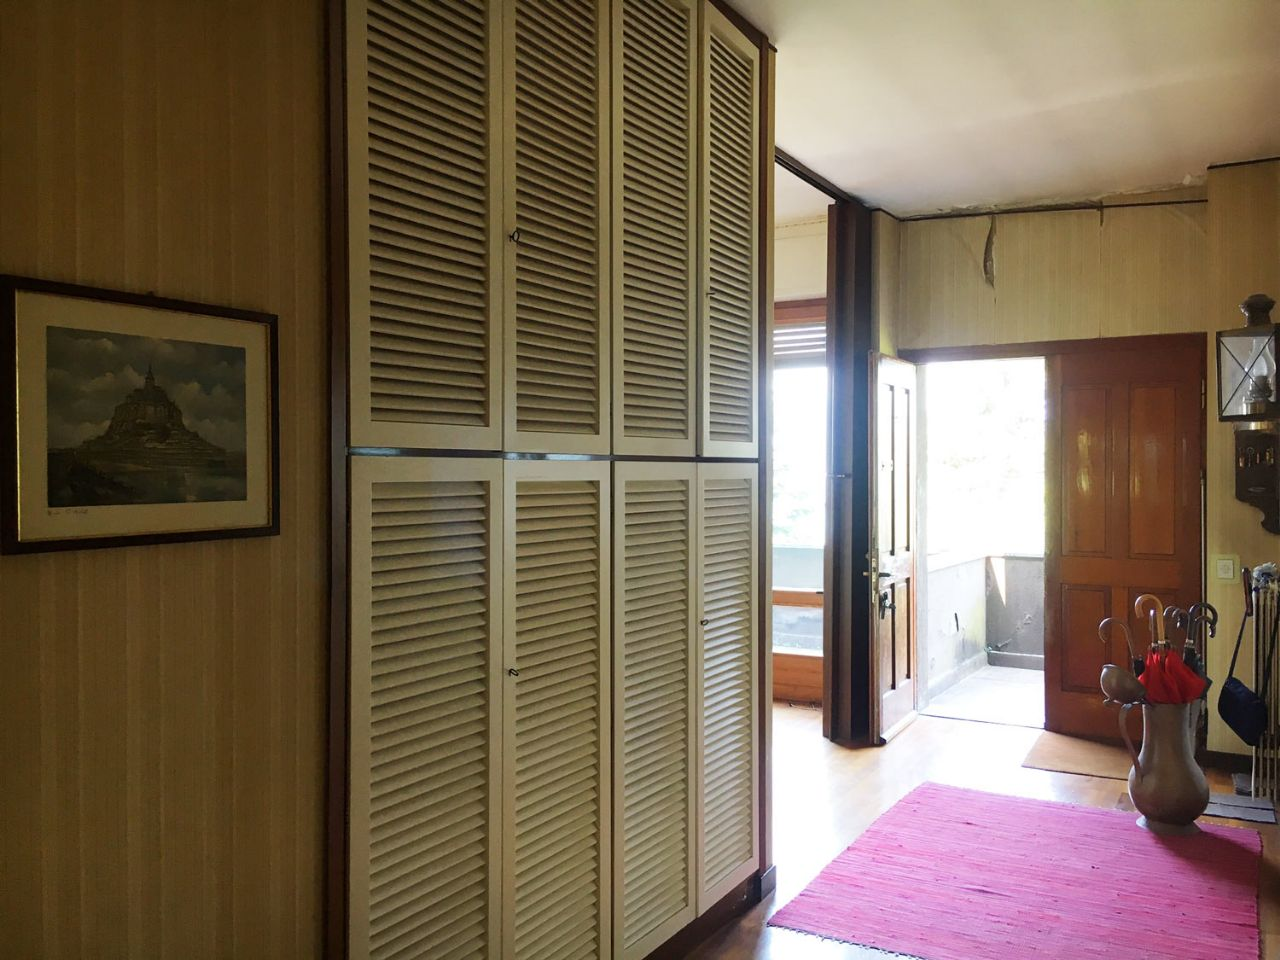 Lake view house from Laveno to Luino 3 bedroom with garden and garage